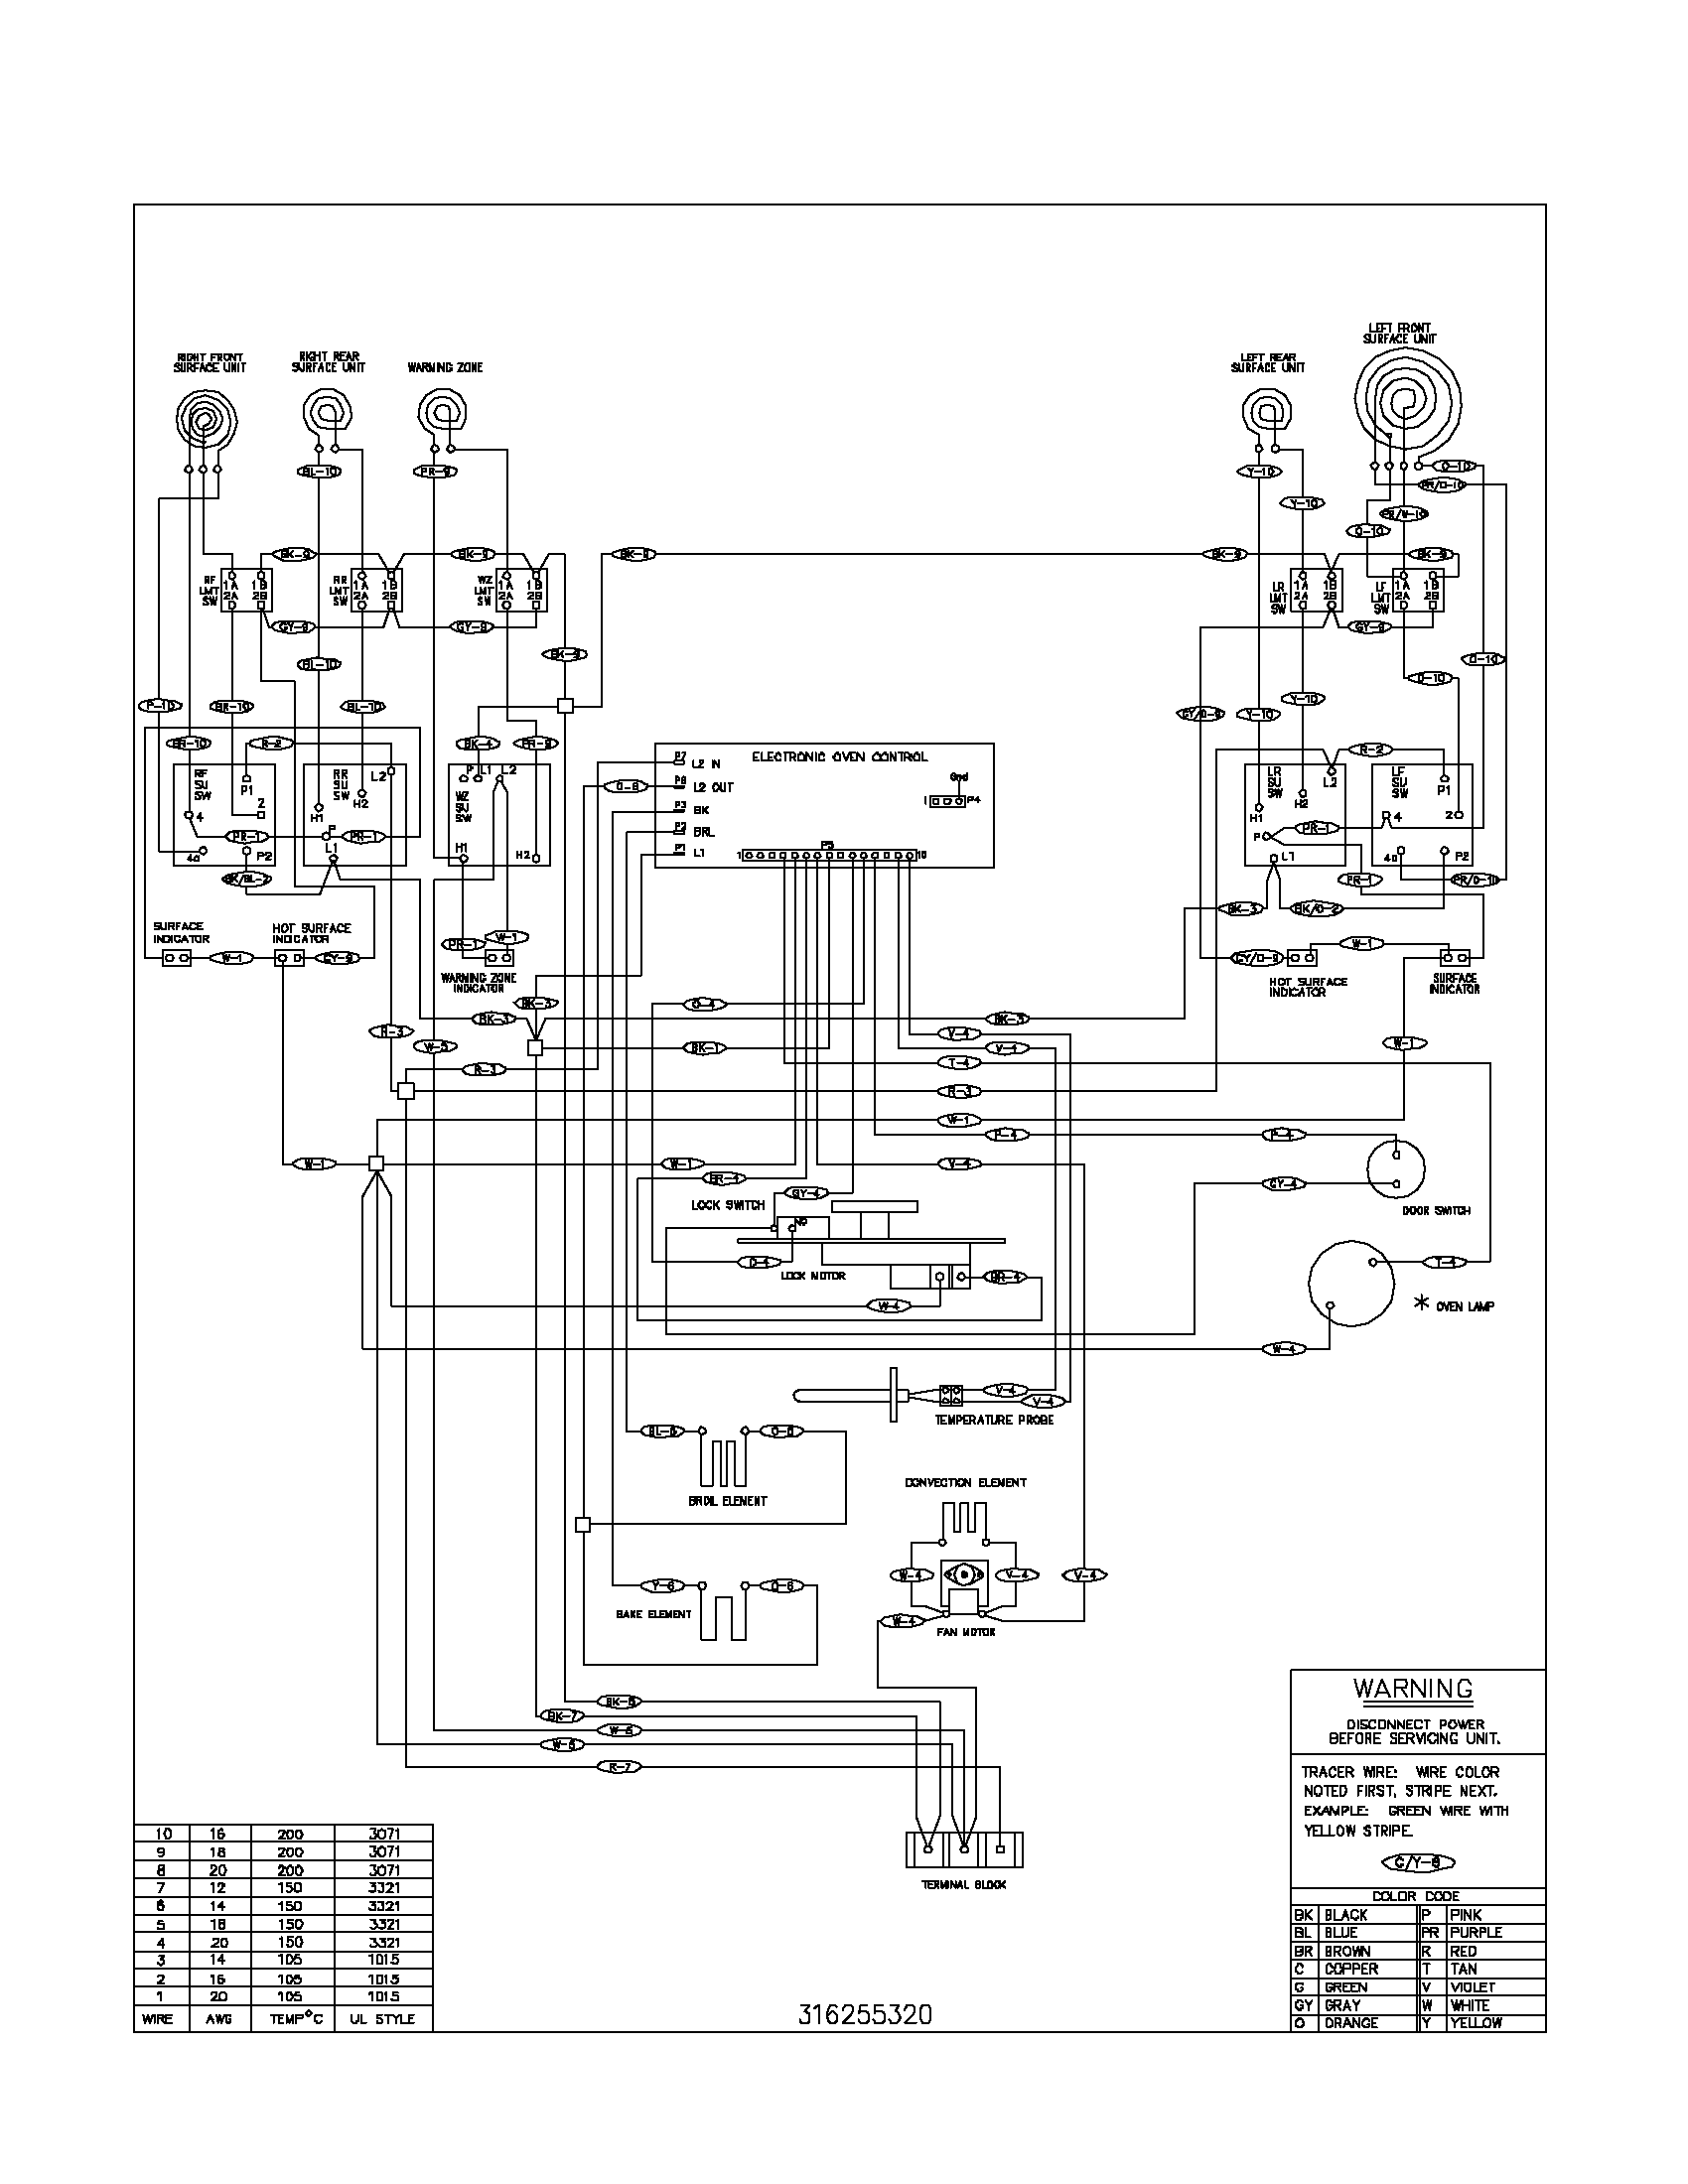 Watch besides Schematic Symbol For Camera additionally Need Gate Driver For Mosfet Irf540 And Microcontroller together with Mercedes 230sl Wiring Diagram also Stock Photo Plc Control Terminal Wiring Panel Wires Industrial Factory Image62932437. on electronic relay label